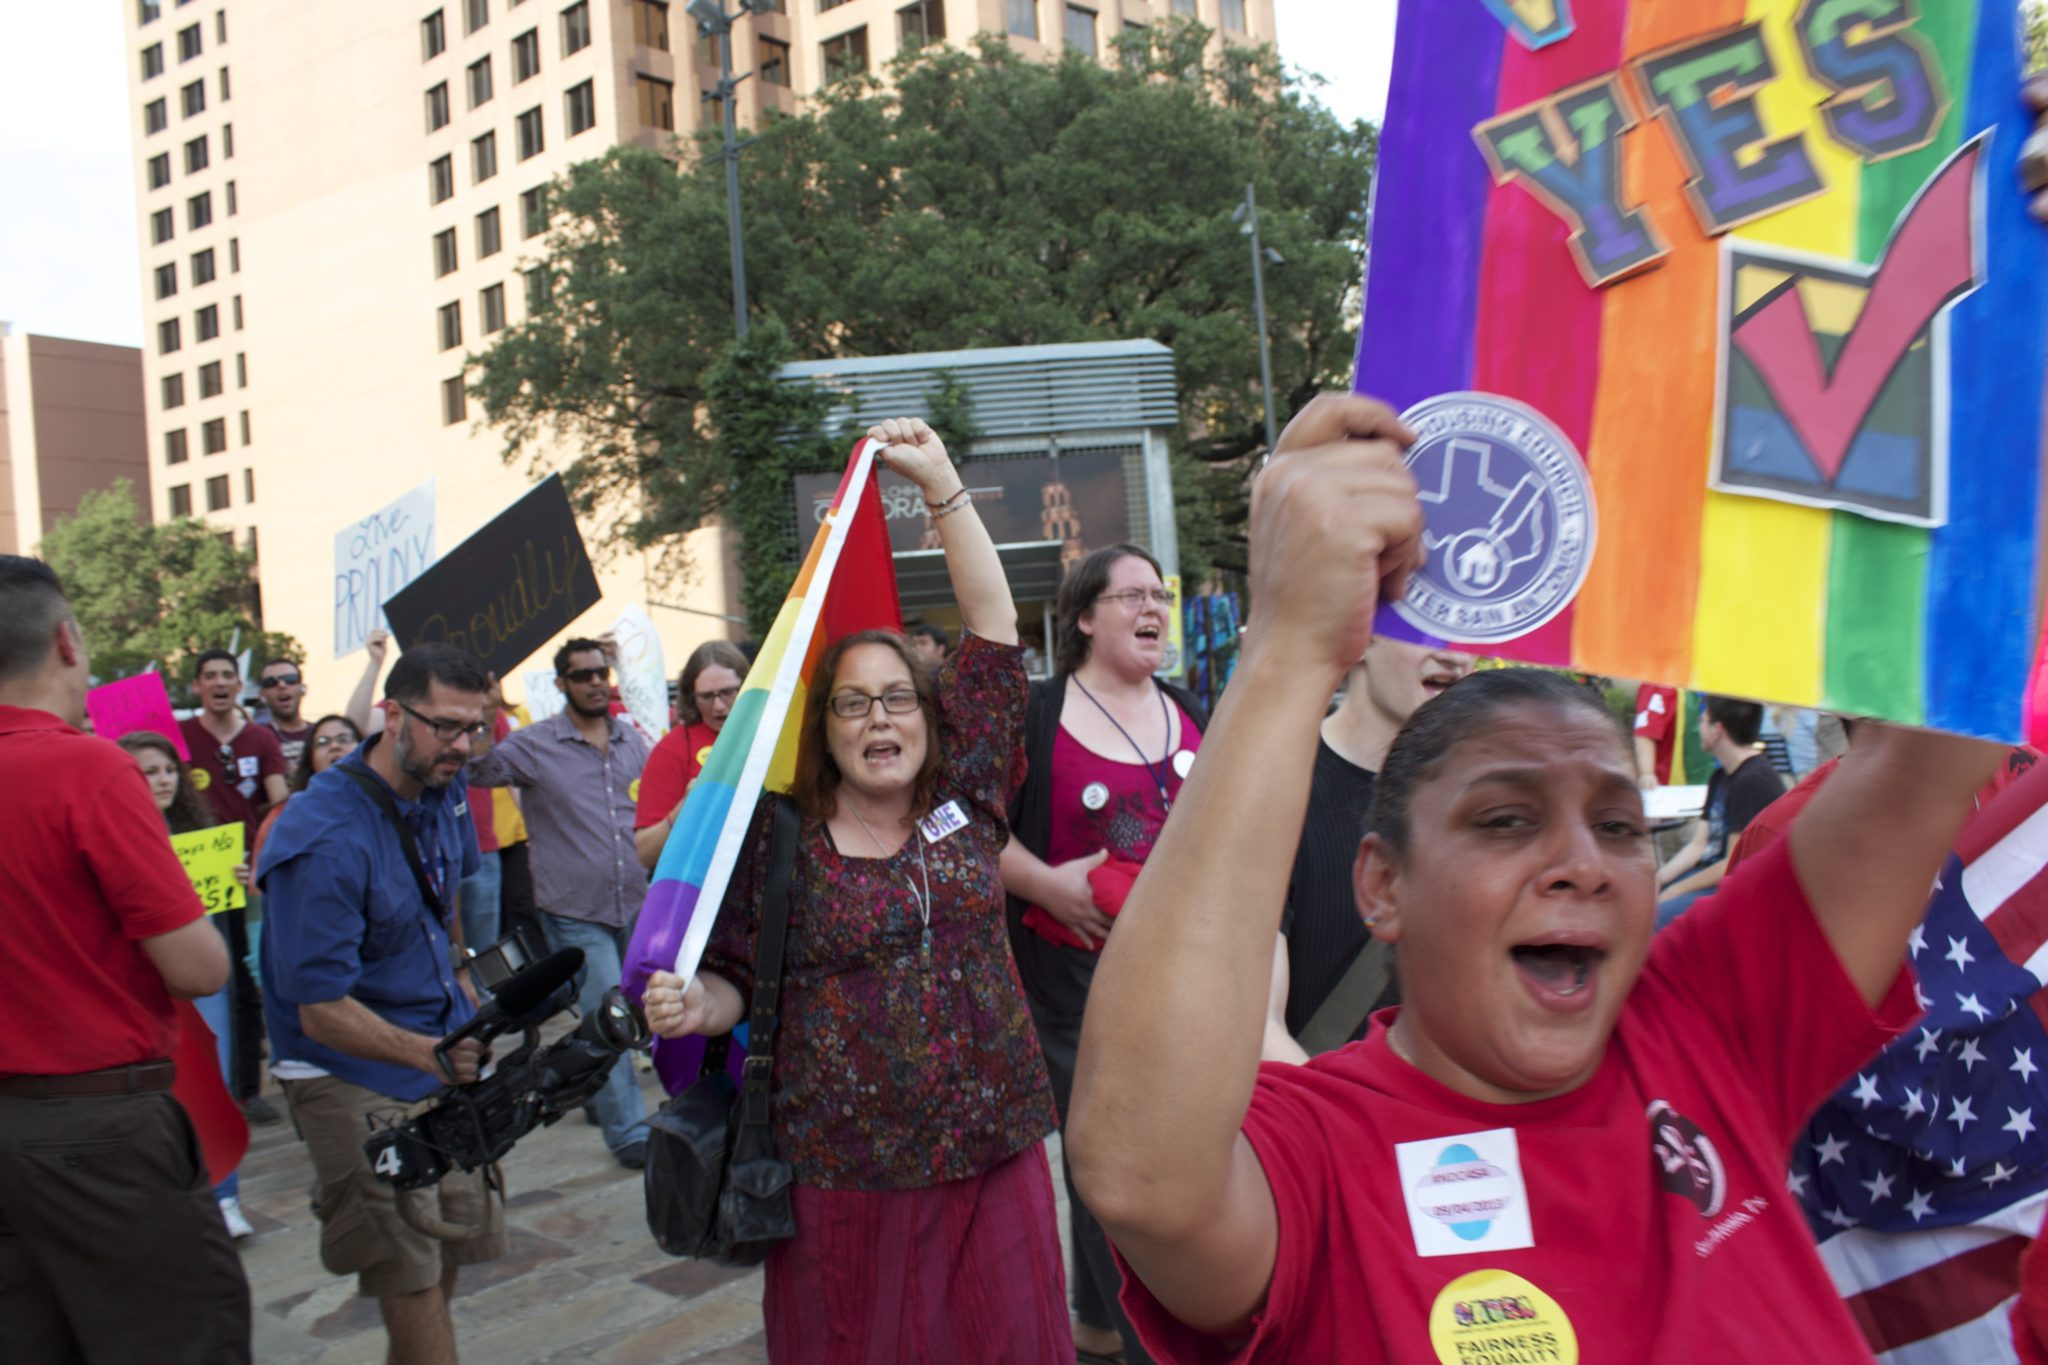 A September march in favor of San Antonio's non-discrimination ordinance.